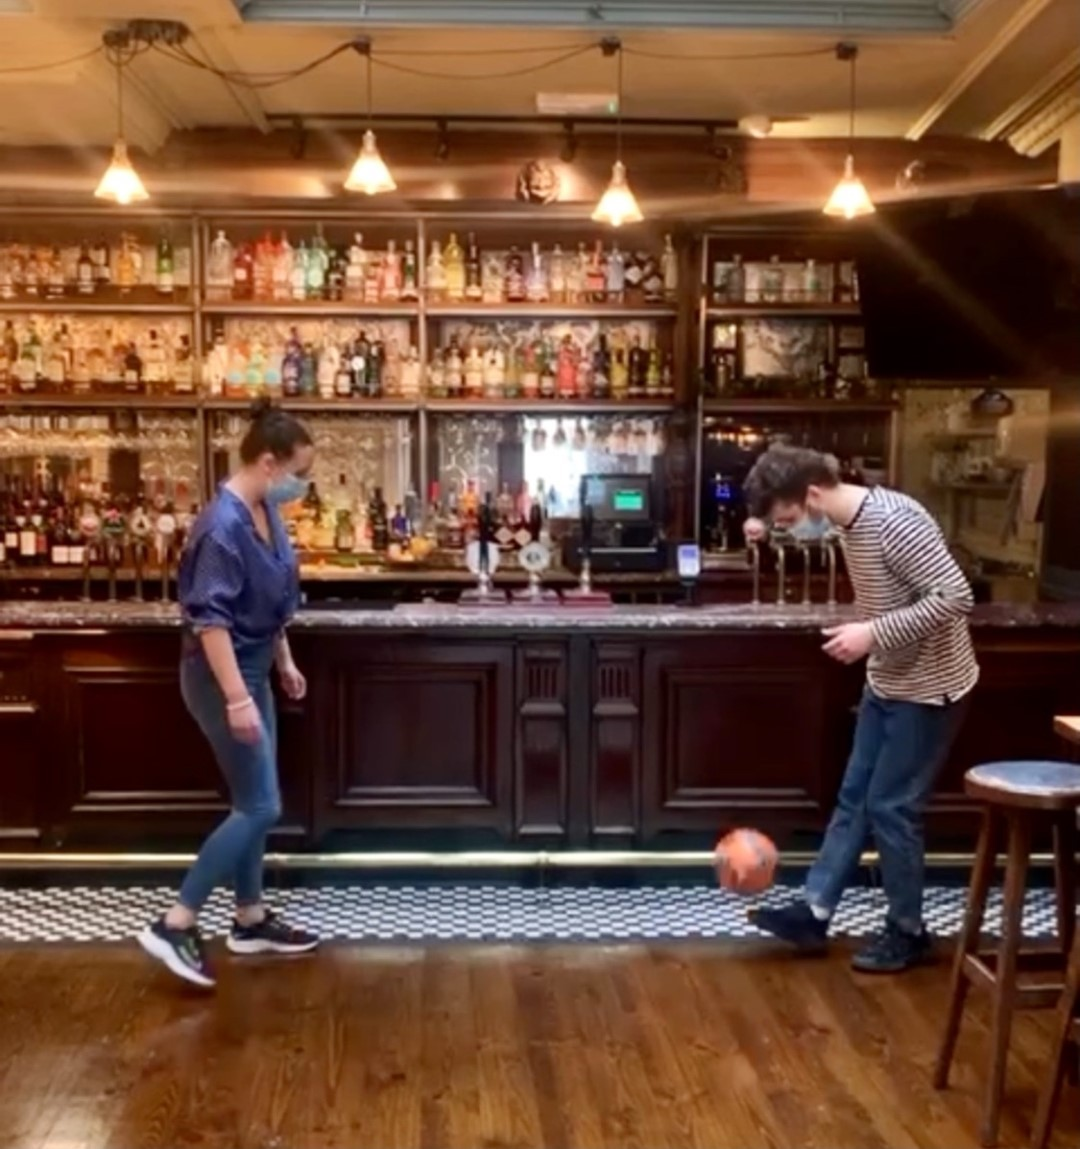 Here, we are already warming up for the start of the Euros. Luckily for the other participants, Team Punch didn't qualify, but luckily for all of you, we will be showing all the action live. Book your table now, limited seats available! . . . . . . #football #euros #euros2021 #fleetstreet #ec4y #urbanpubsandbars #itscominghome #booknow #bestpubs #beerstagram #food #foodandrinks #footballfans